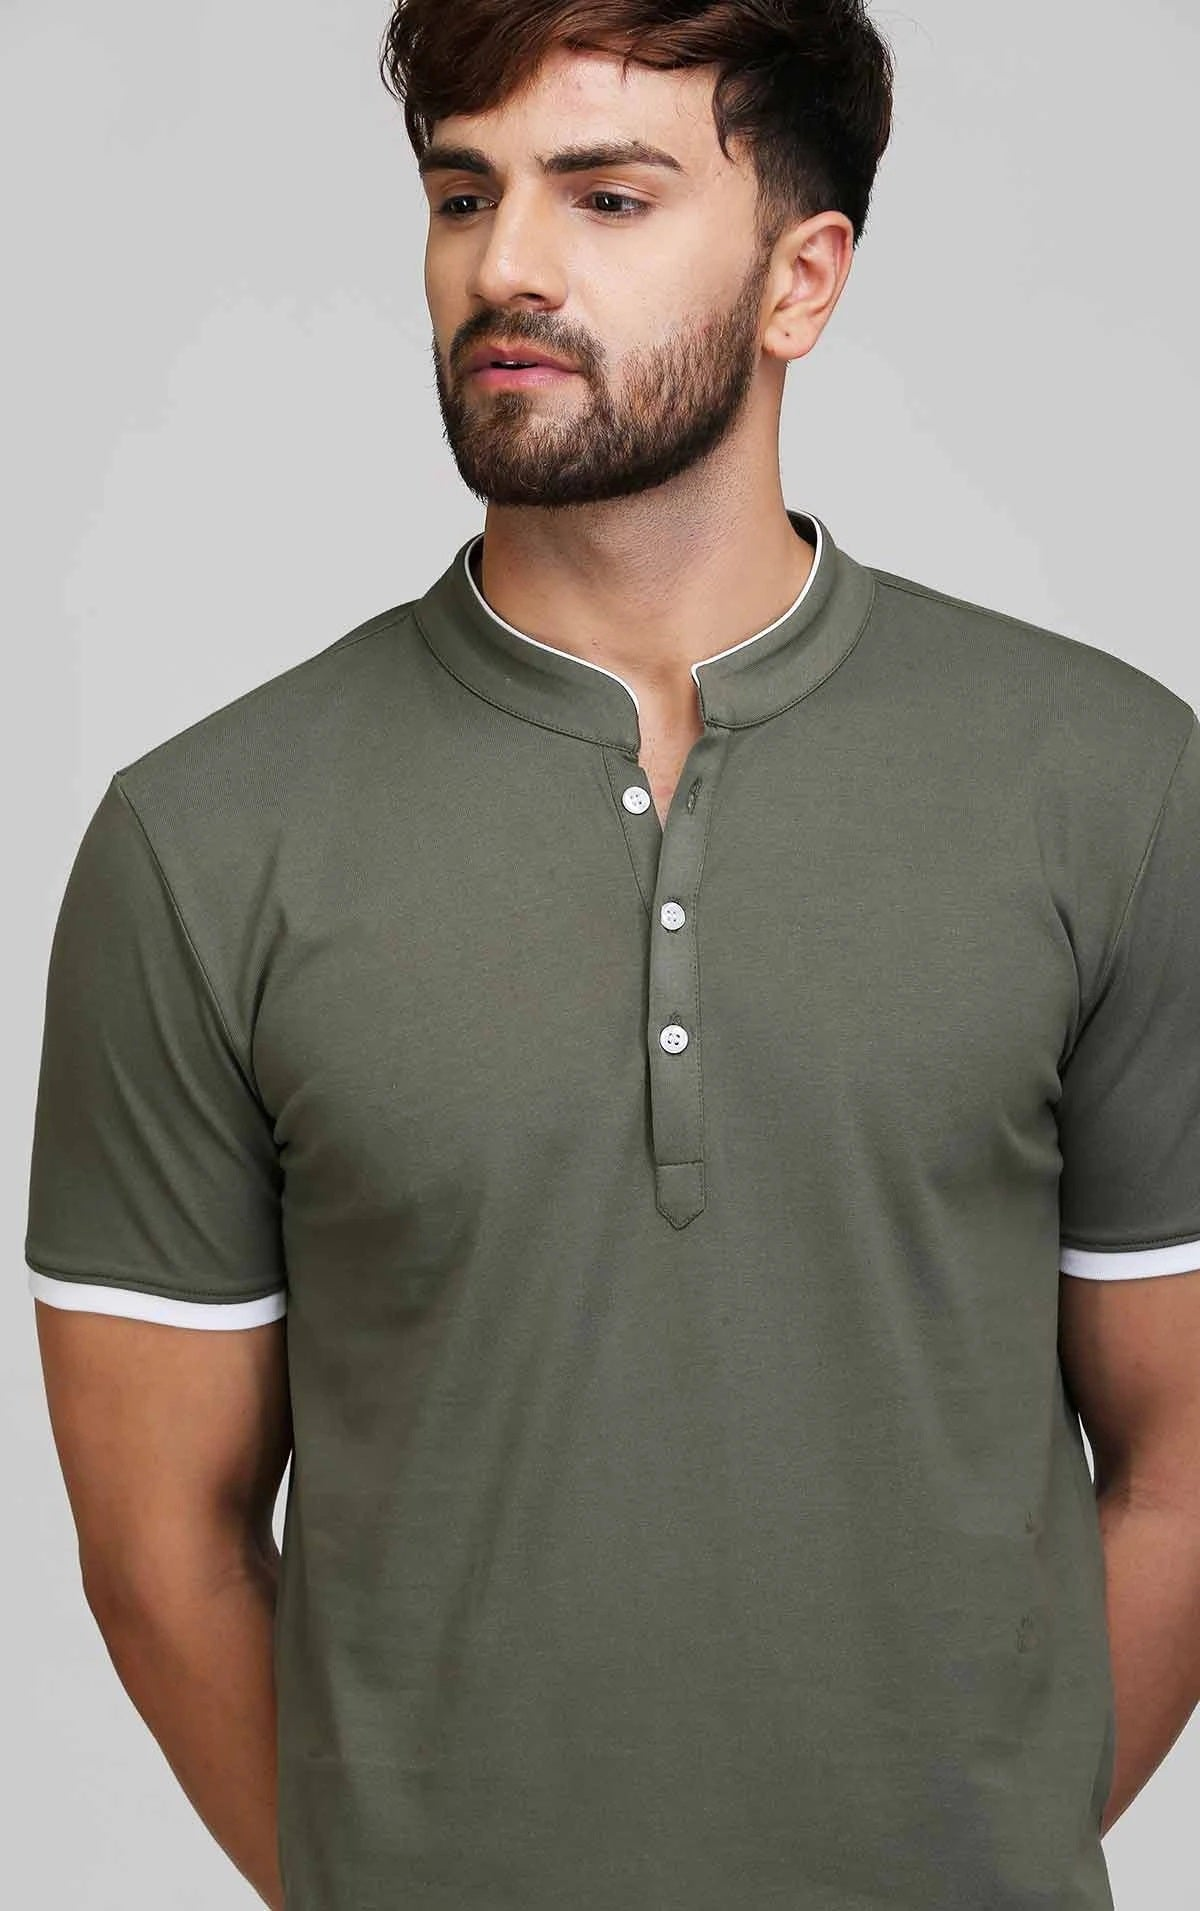 HENLEY NECK OLIVE T SHIRT